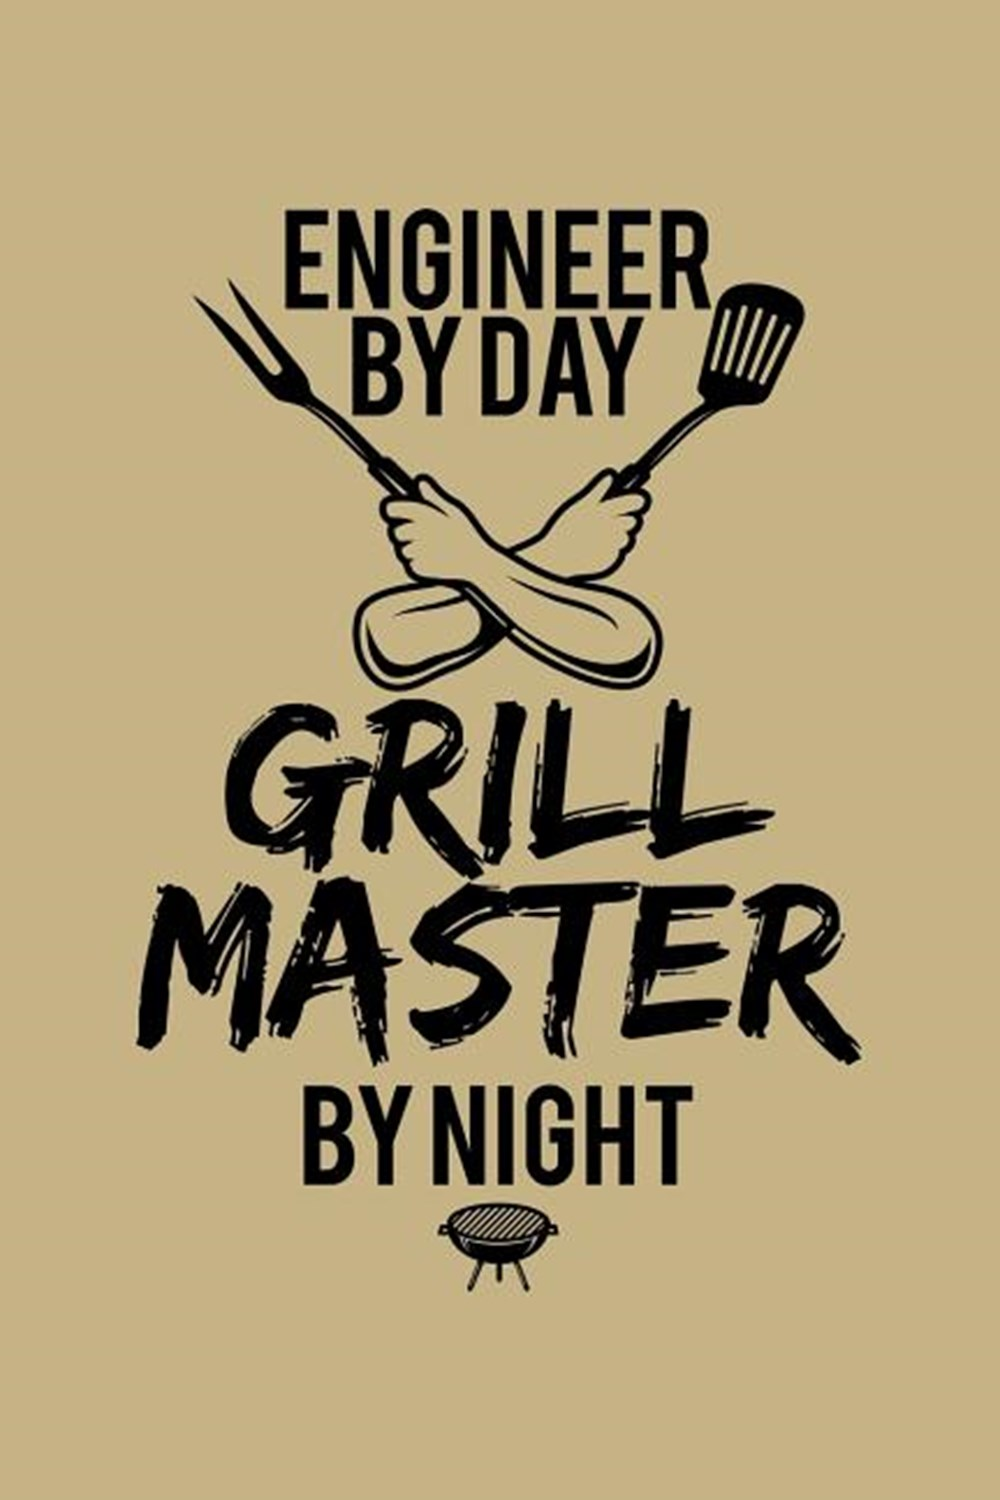 Engineer By Day Grill Master By Night Blank Cookbook Journal to Write in Recipes and Notes to Create